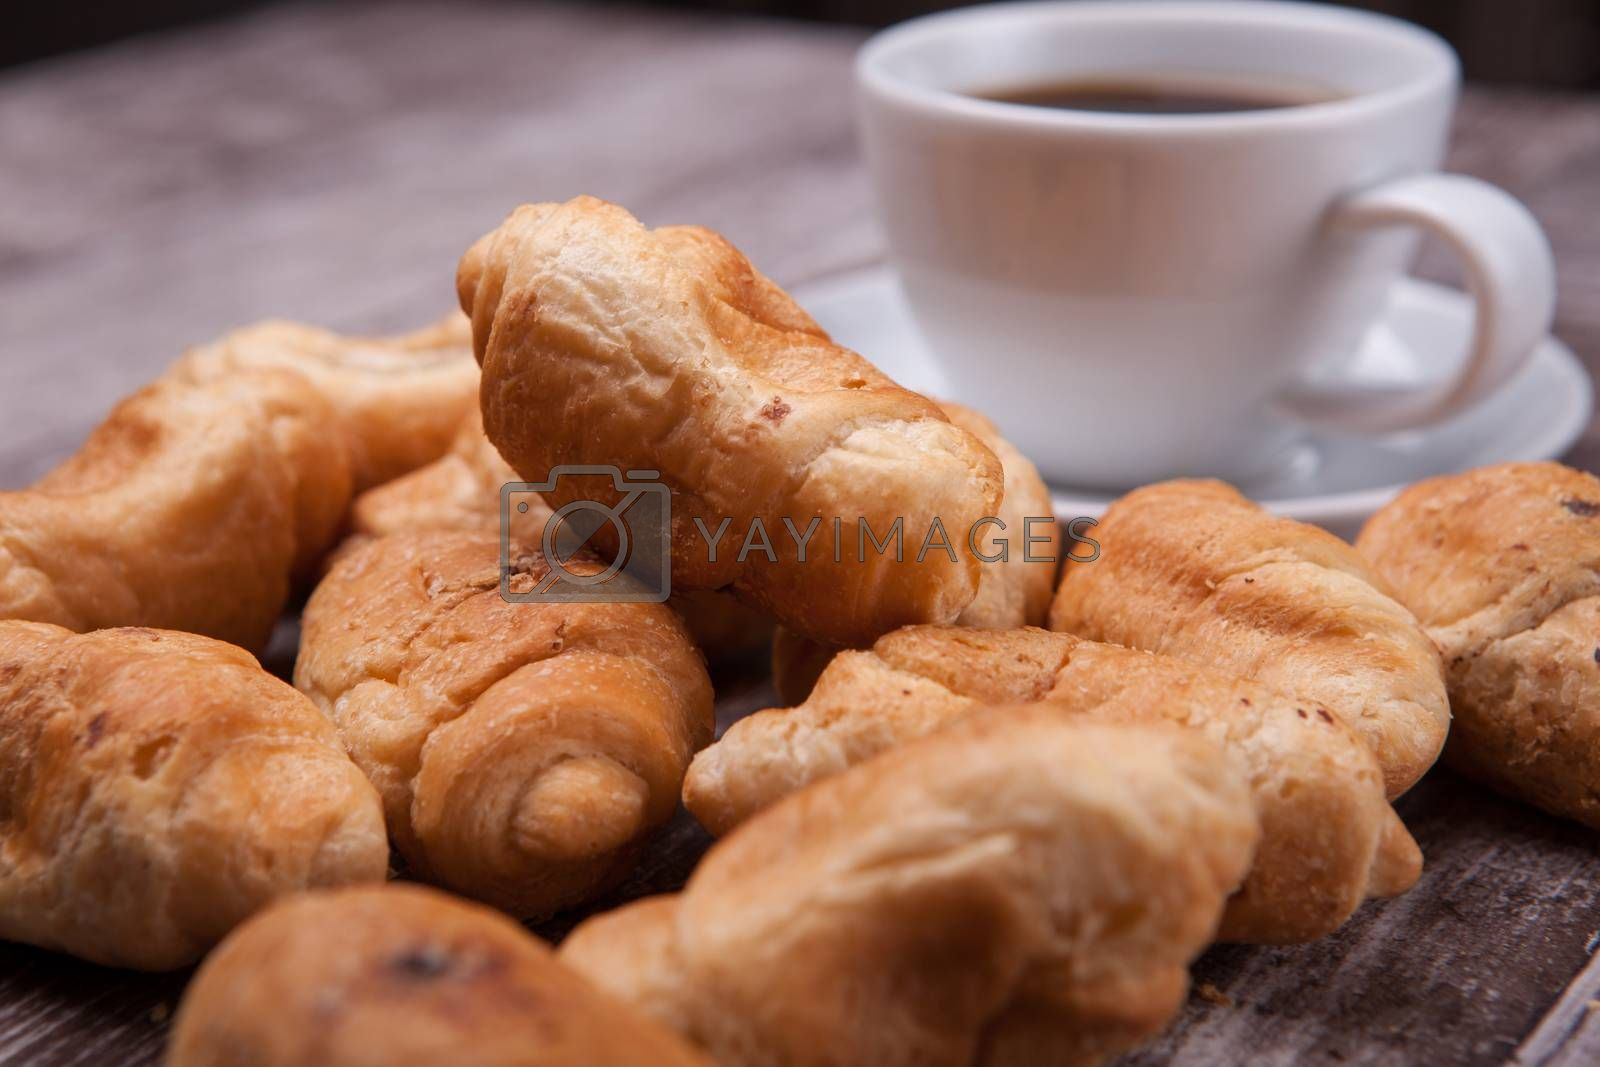 Freshly baked croissants on rustic wooden table with cup of coffee by DCStudio